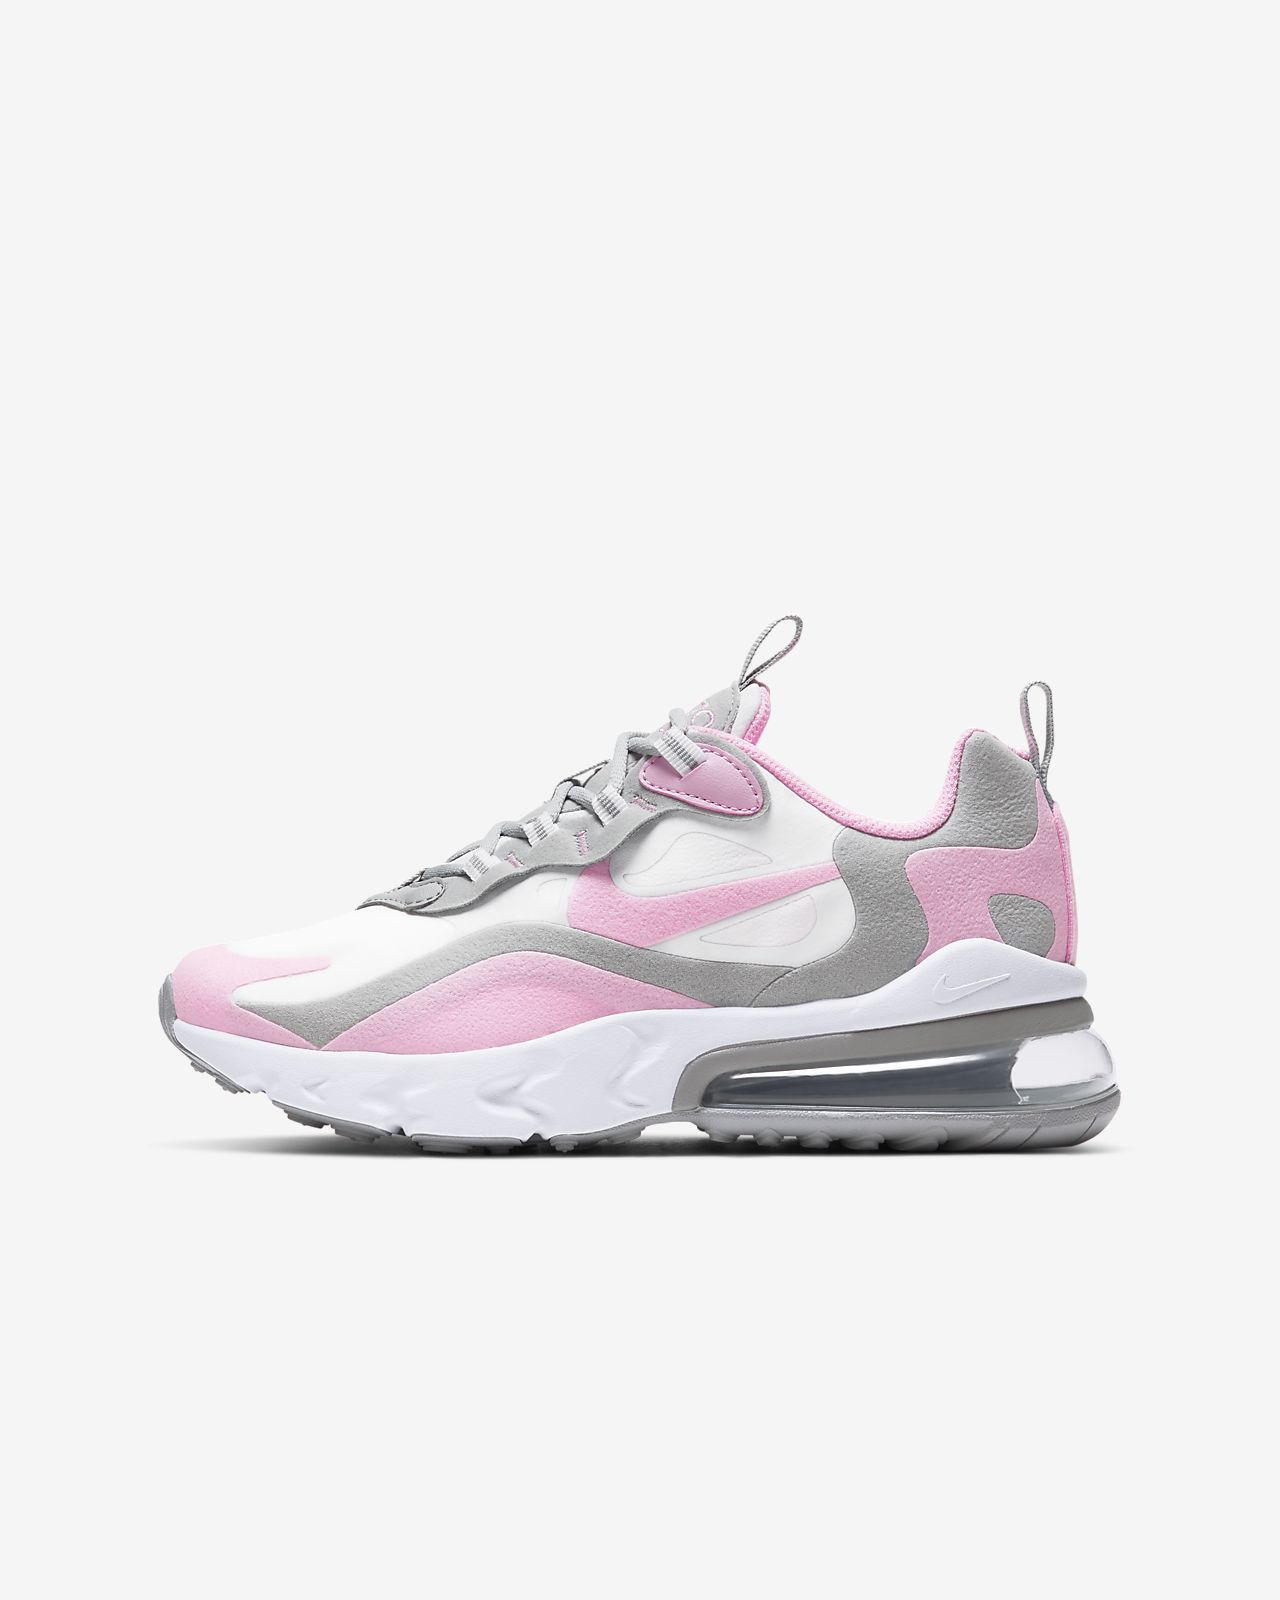 BUTY NIKE AIR MAX FUSION r 38.5 TRENING FITNESS Zdjęcie na